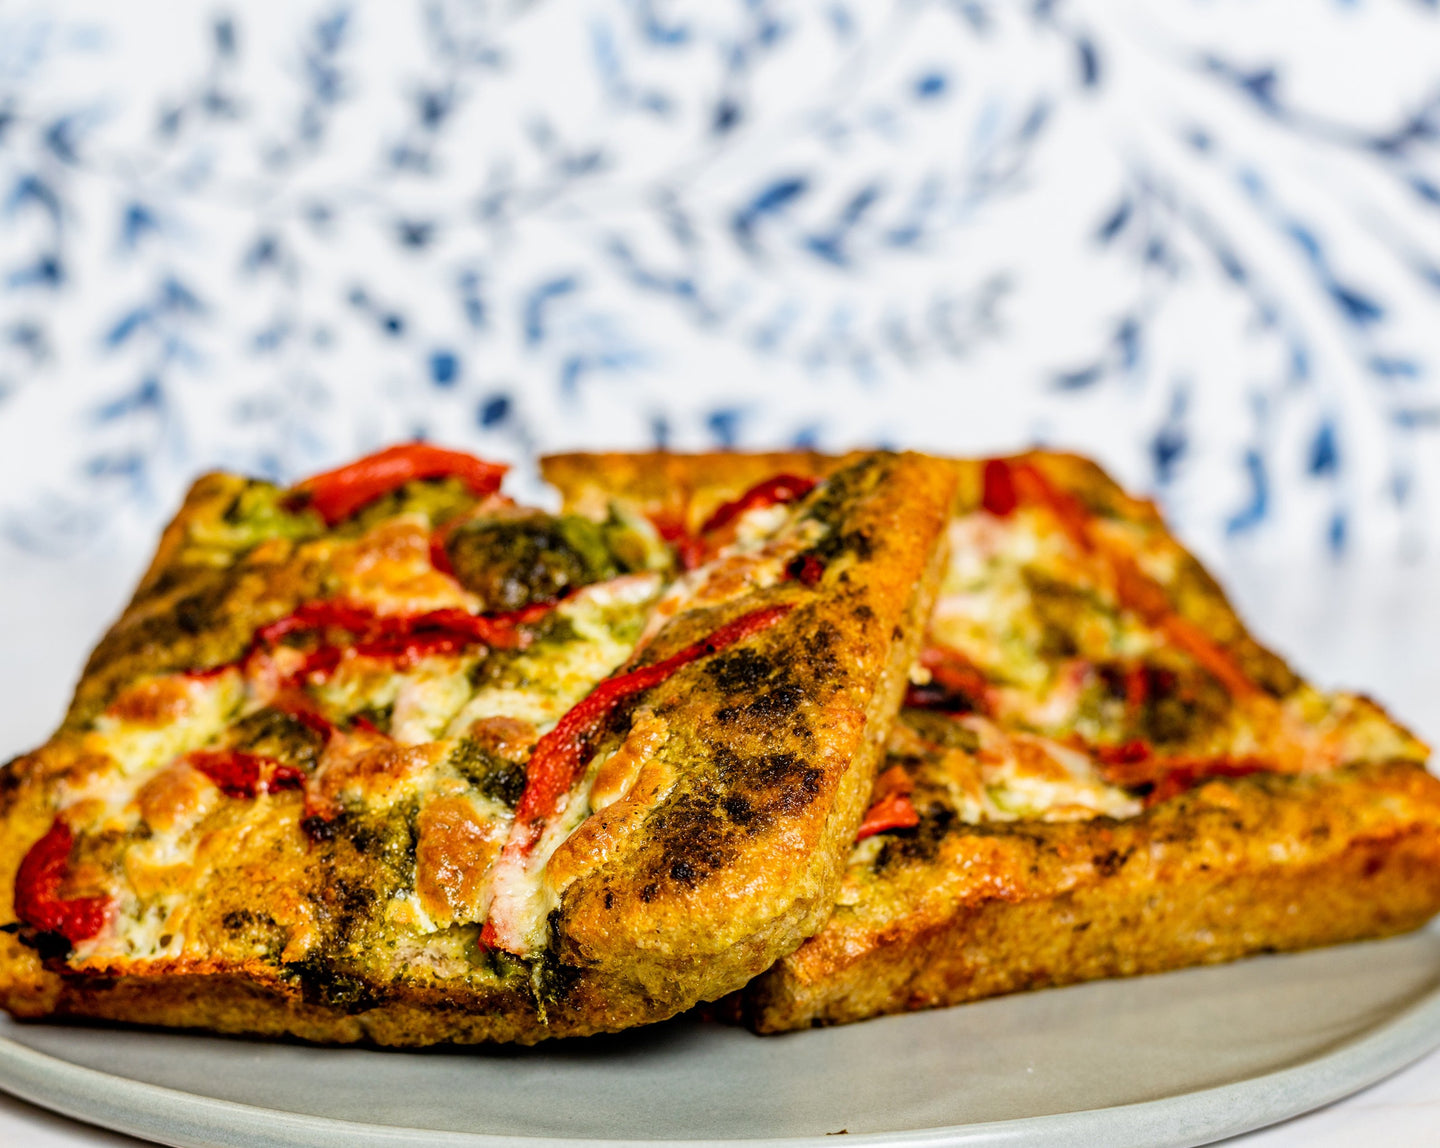 Focaccia with Basil Pesto, Fresh Mozzarella, Roasted Red Peppers, and Parmesan Cheese